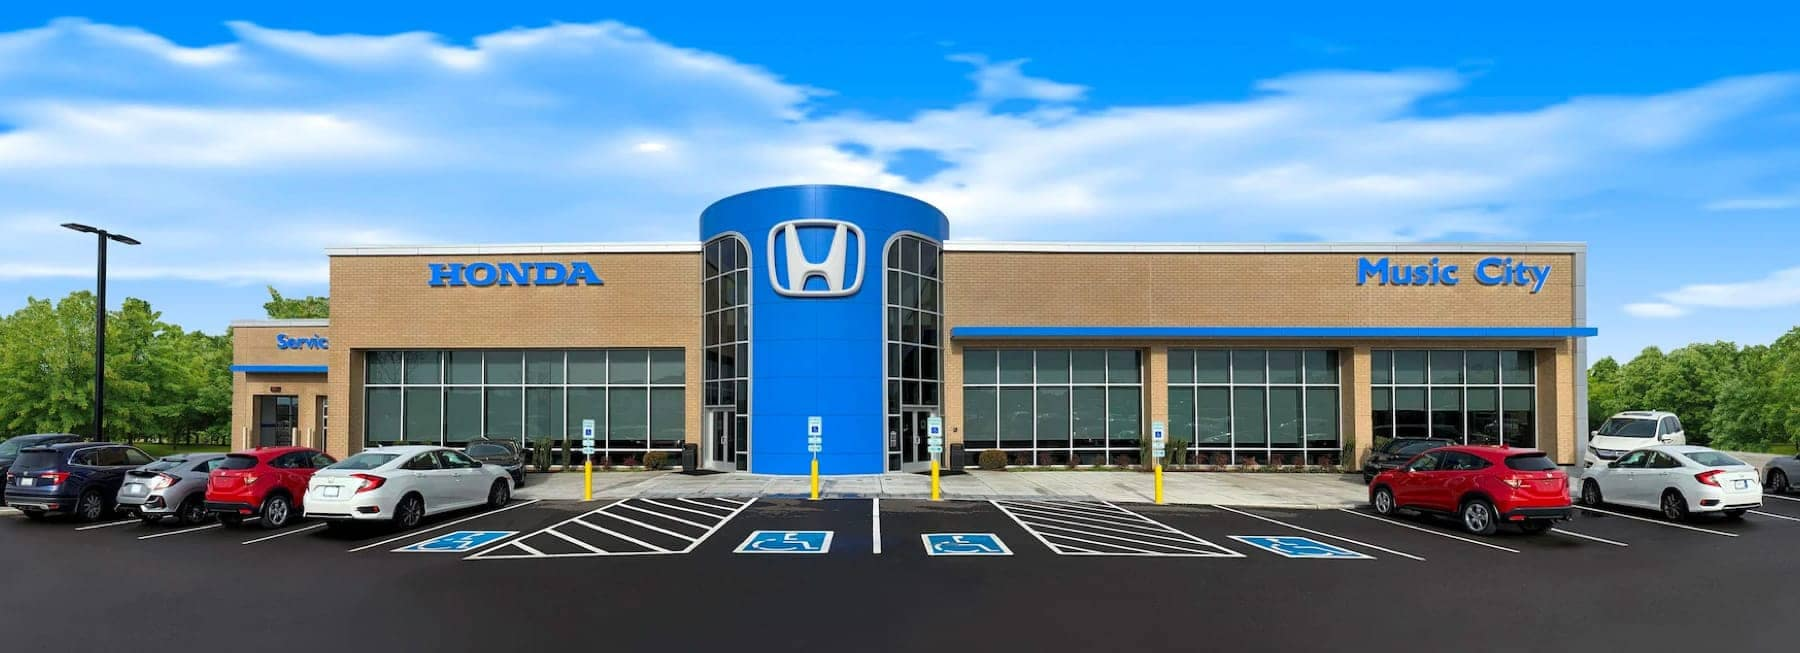 An exterior shot of a Honda dealership.